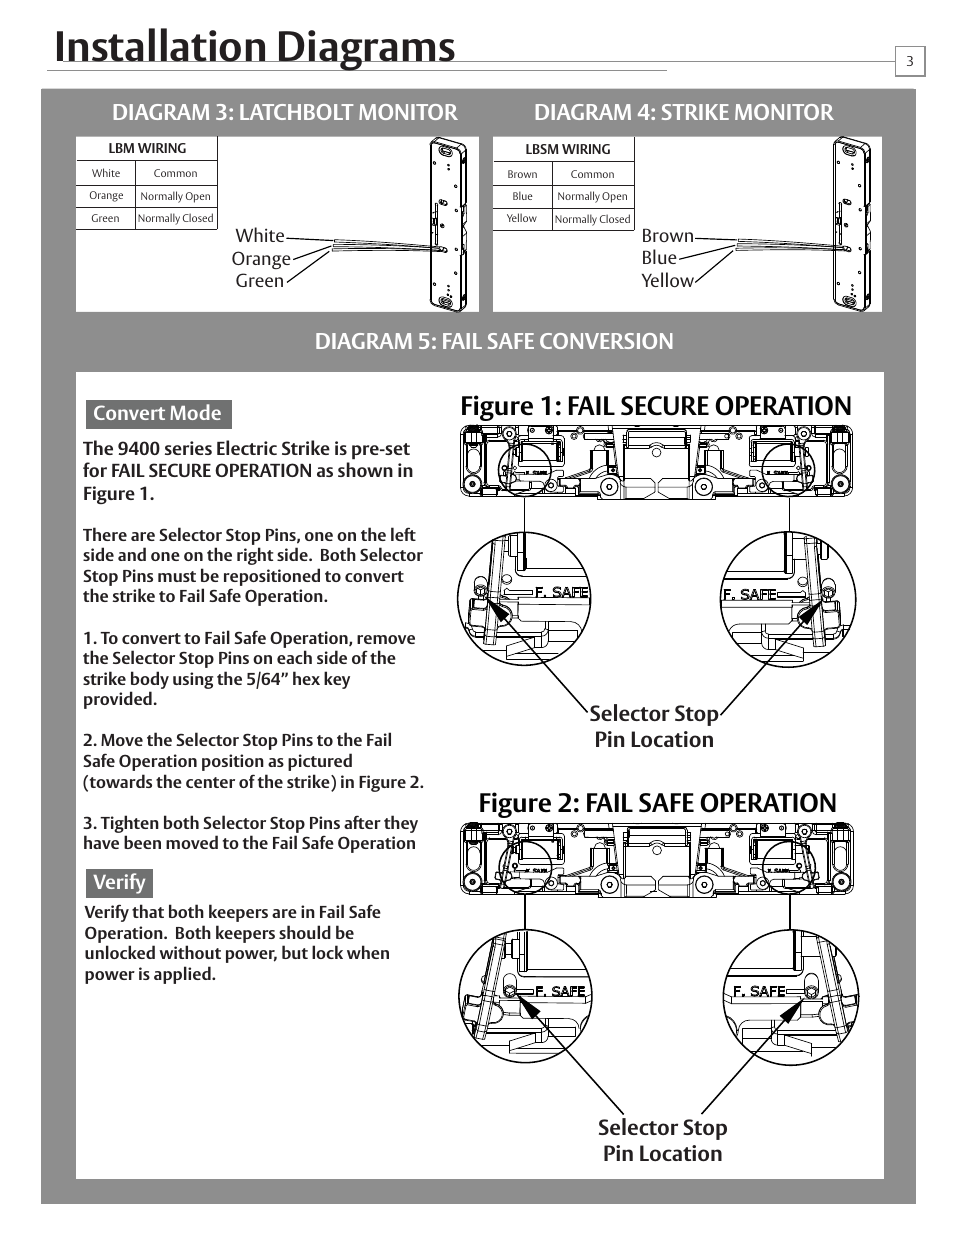 Installation Diagrams  Diagram 5  Cylindrical Locksets